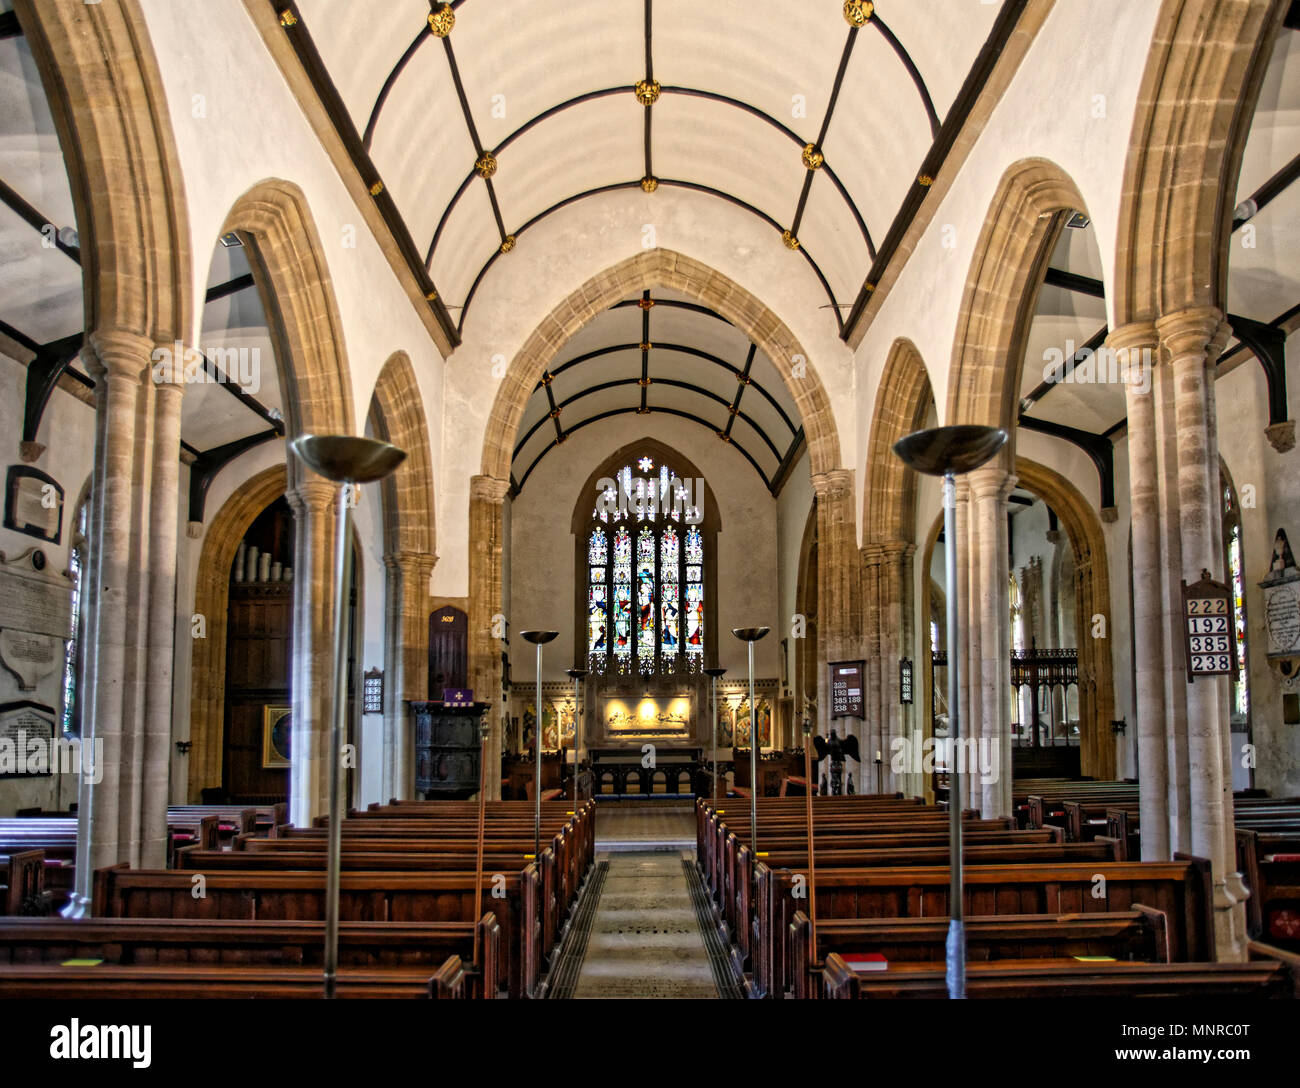 The building of St Peters Church, Dorchester, Dorset, largely dates from the mid fifteenth century, significantly restored in 1856-7 by J Hicks. - Stock Image